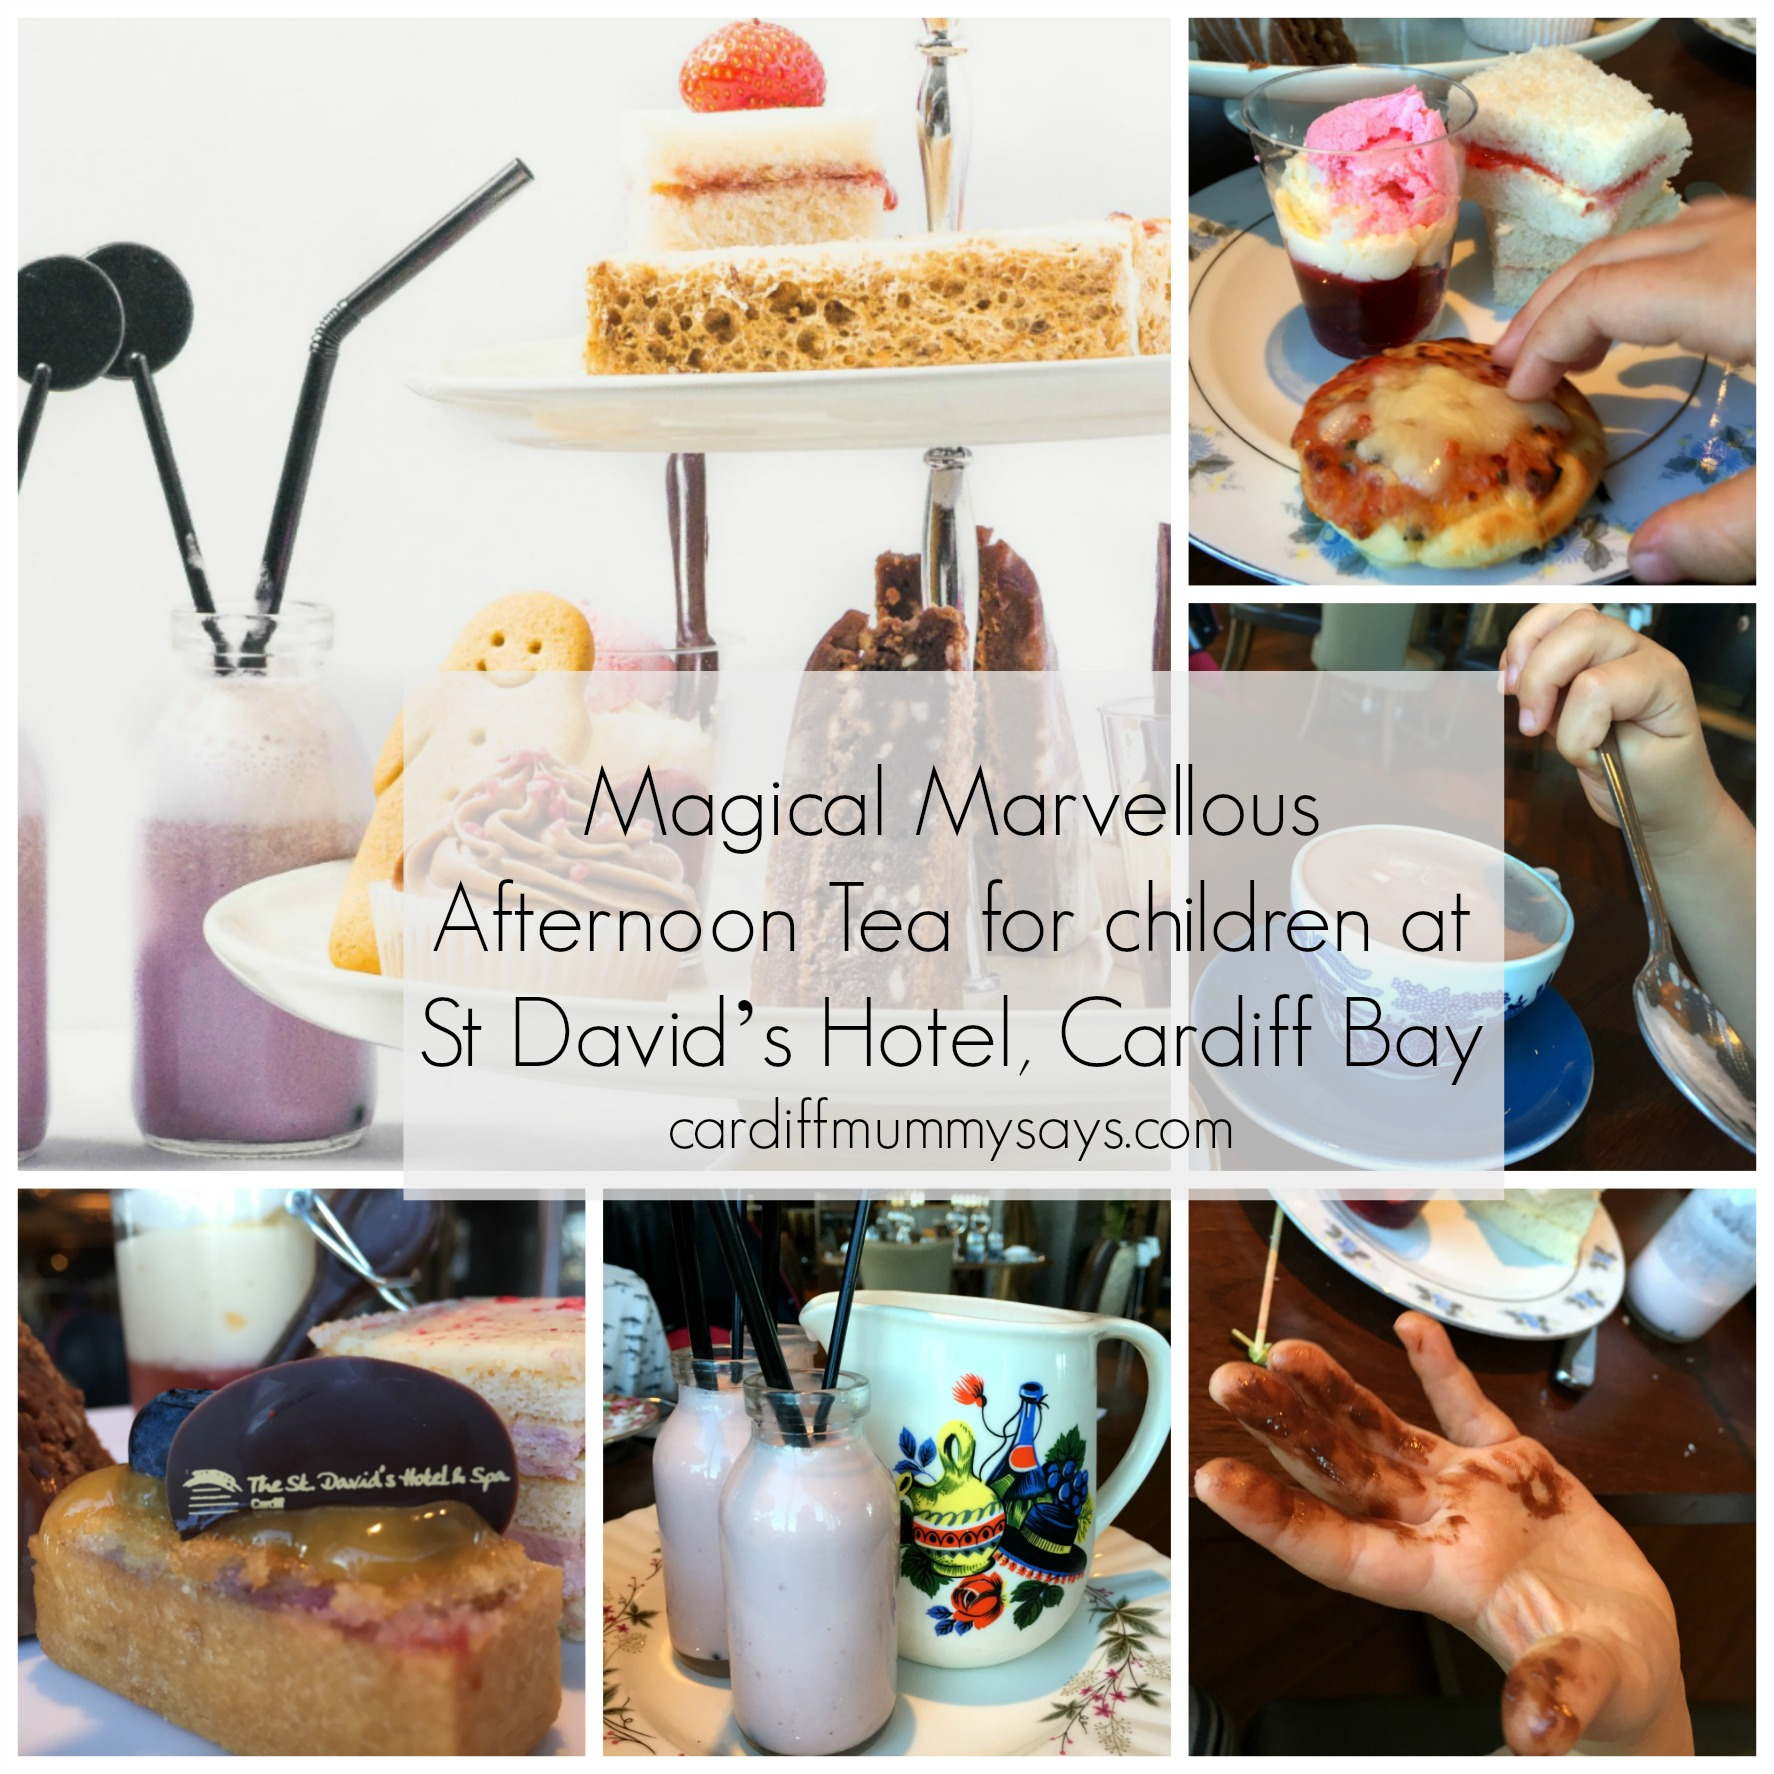 Review: Magical Marvellous Afternoon Tea for children at St David's Hotel, Cardiff